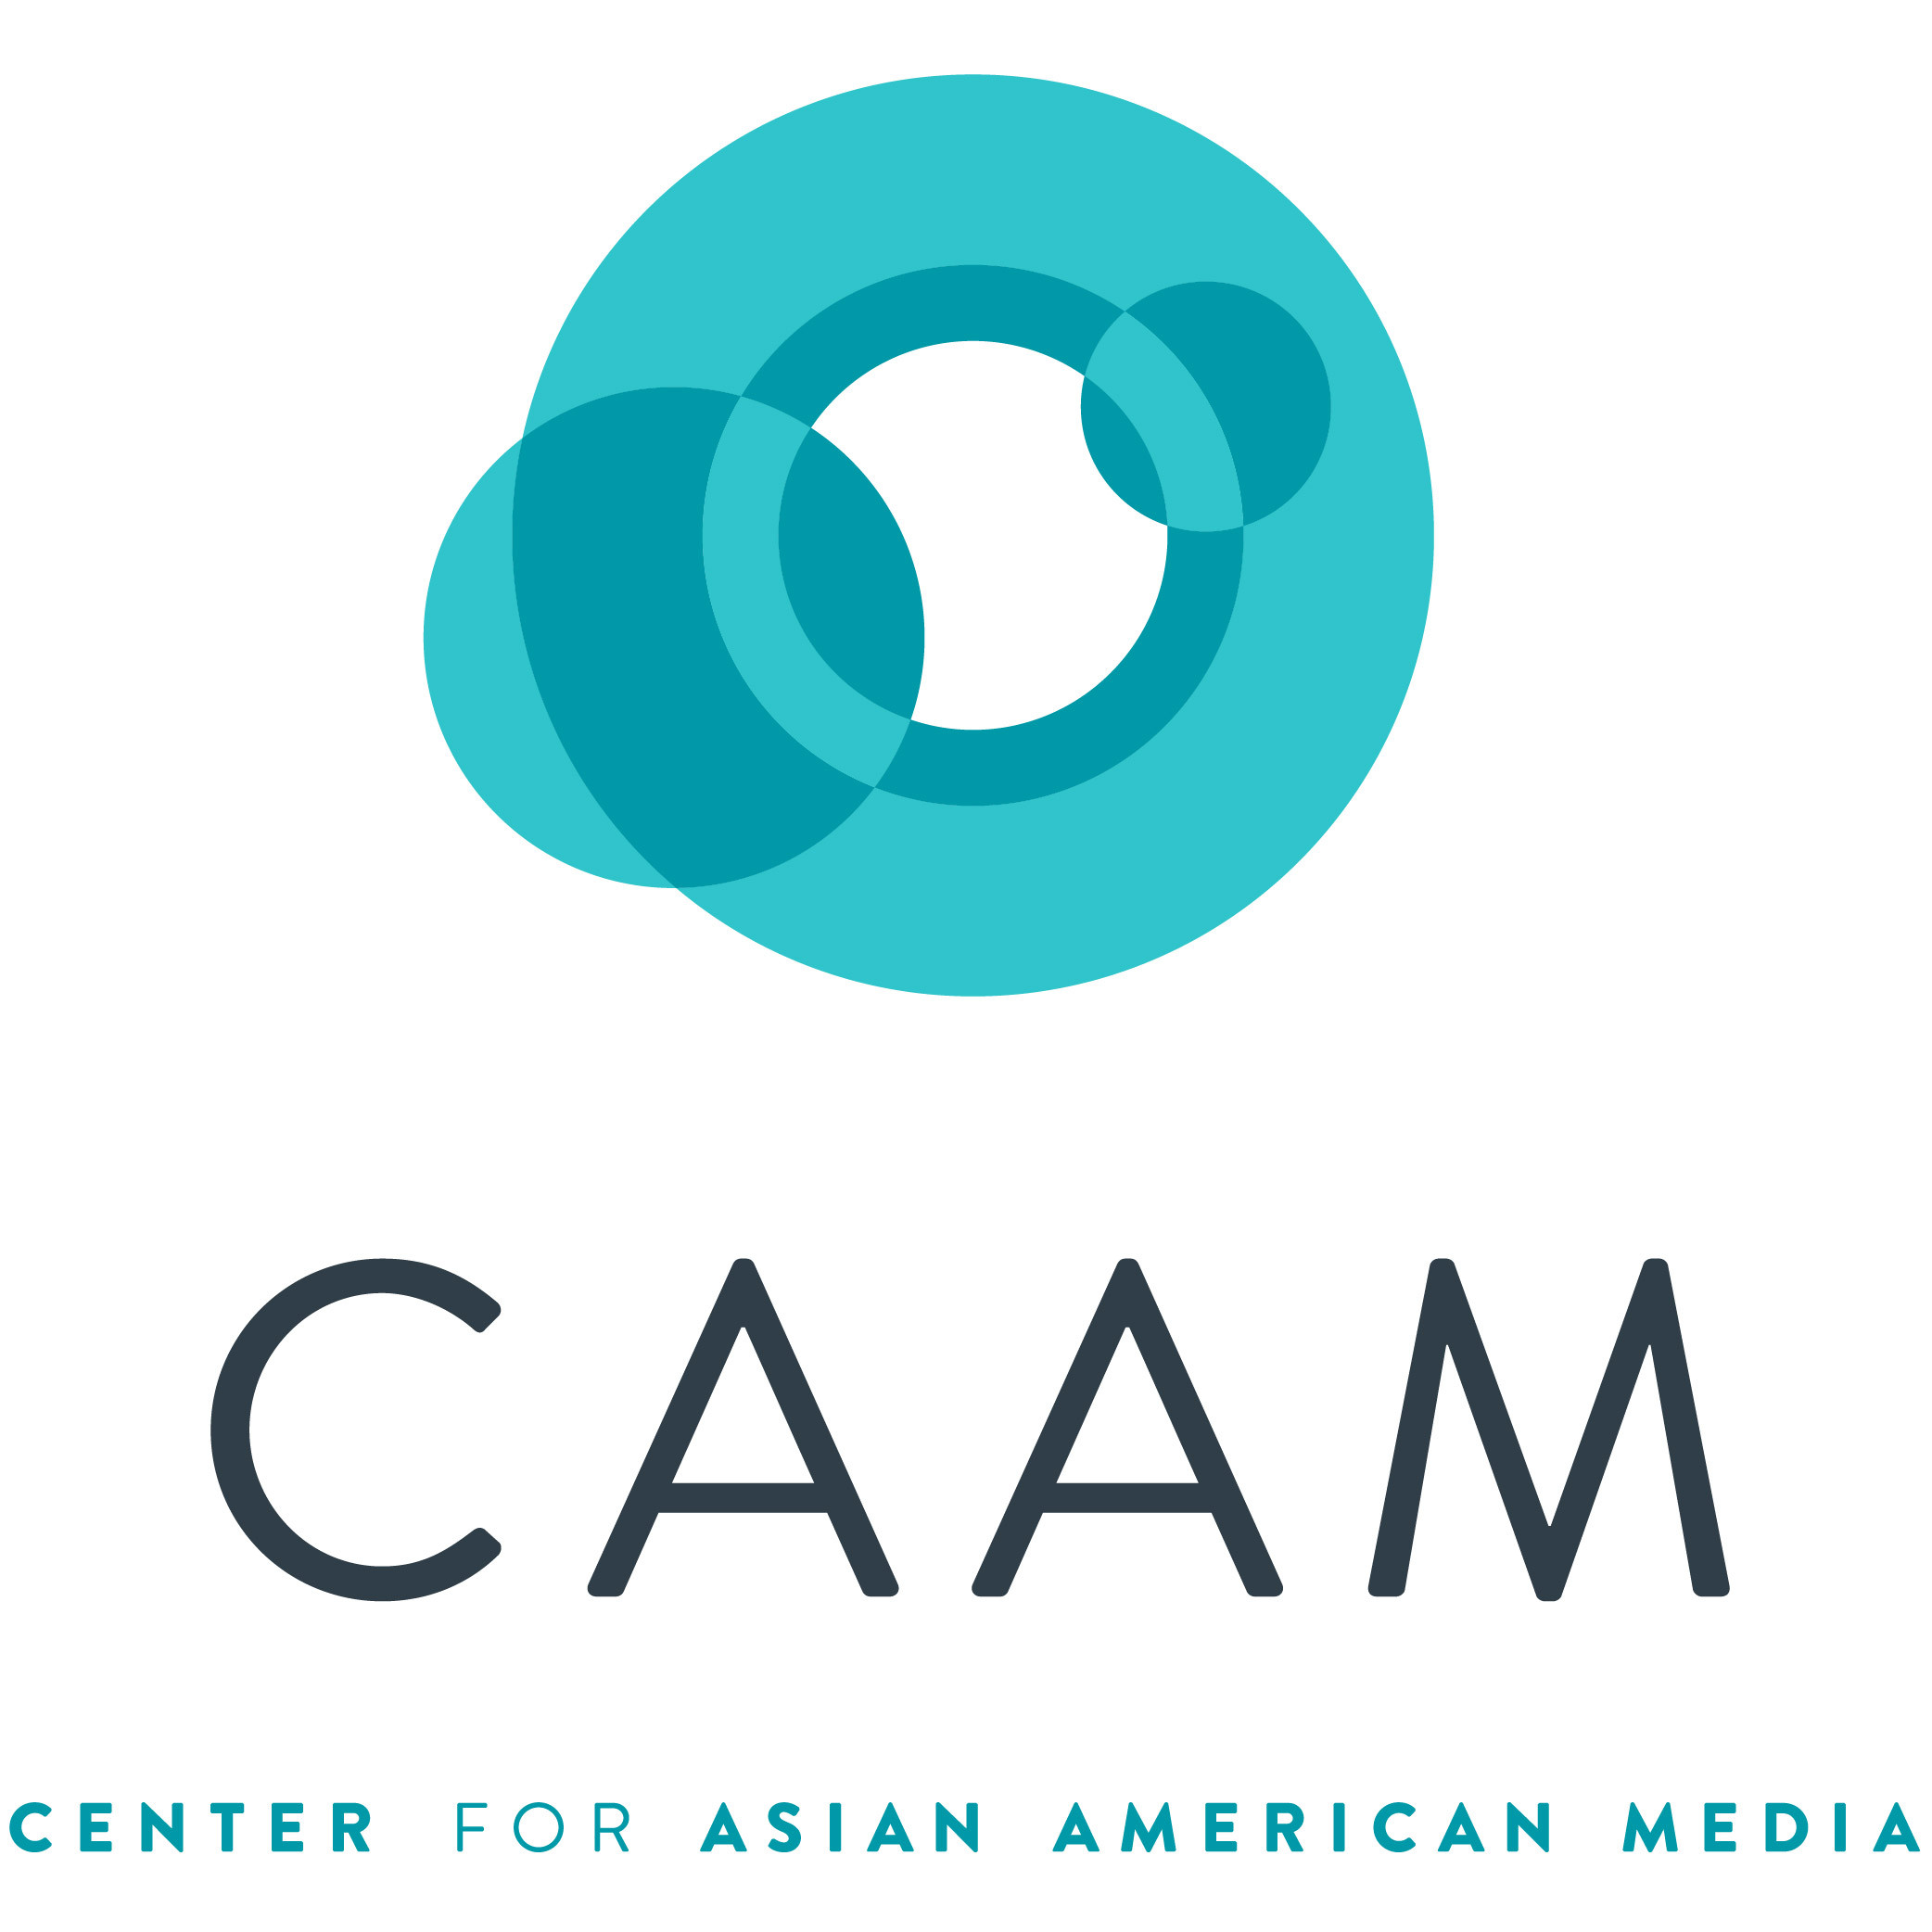 Center for Asian American Media logo